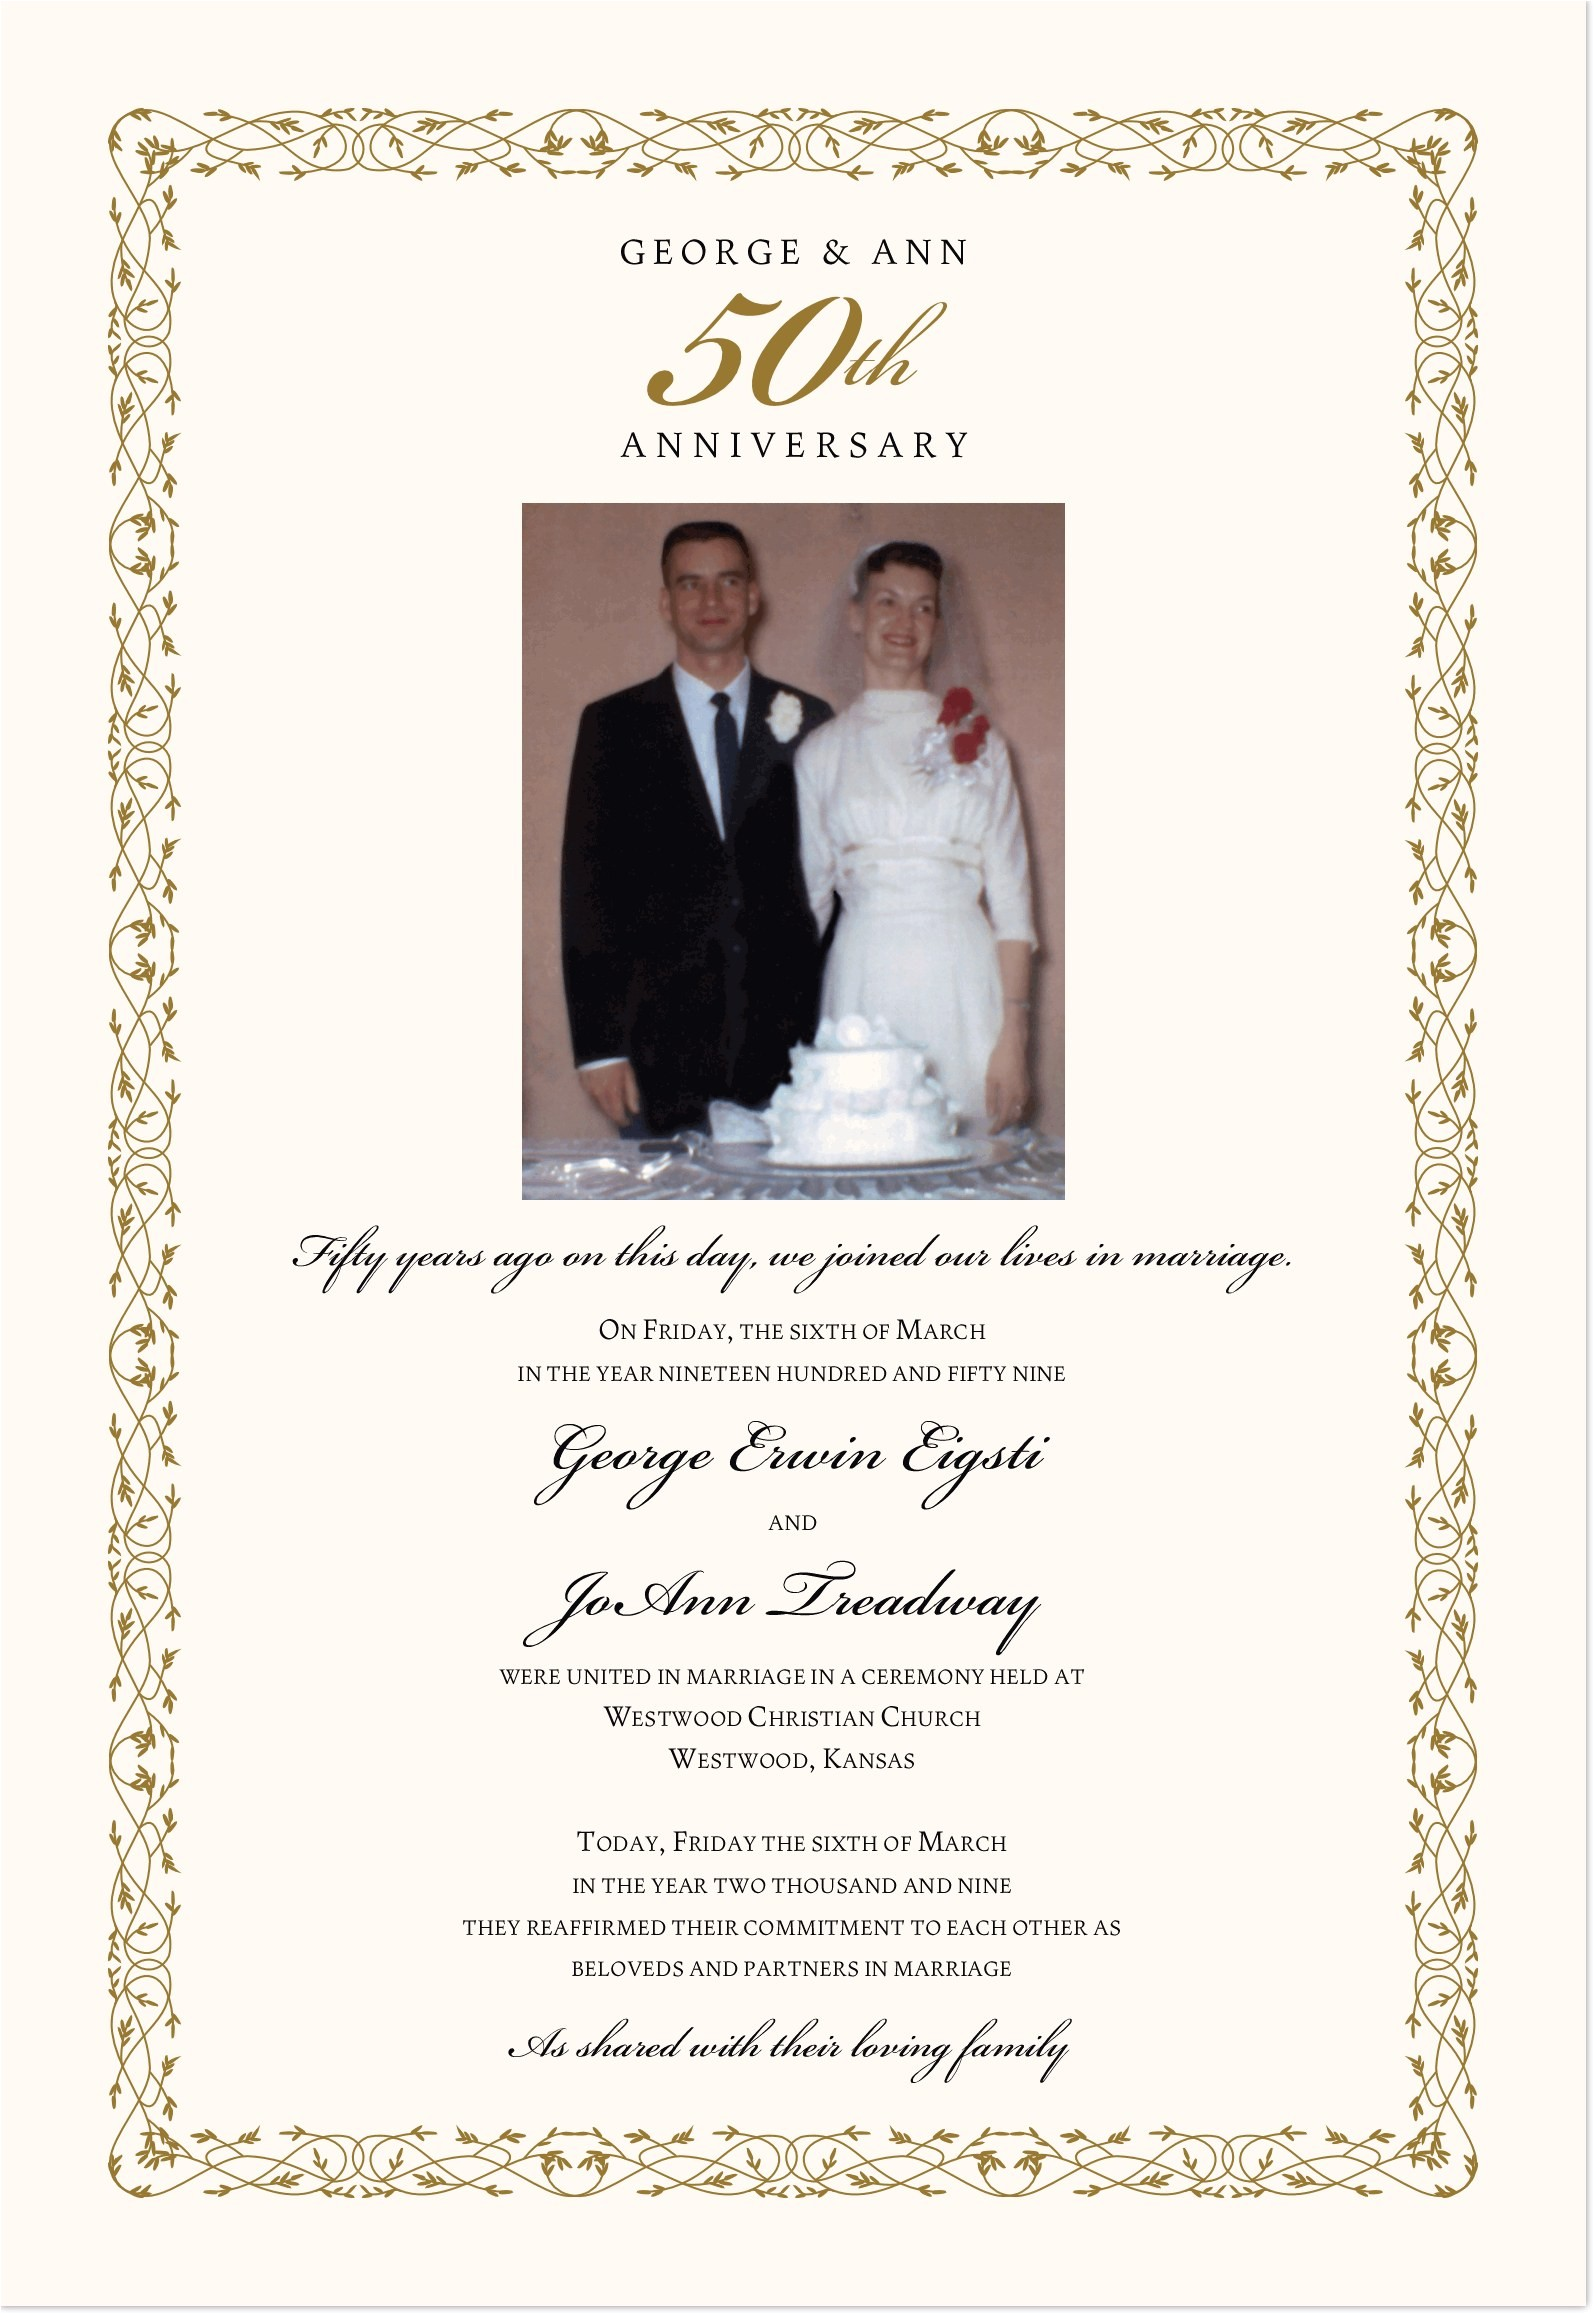 50th Wedding Anniversary Certificate Template 50th Wedding Anniversary Certificate Renewal Of Vows